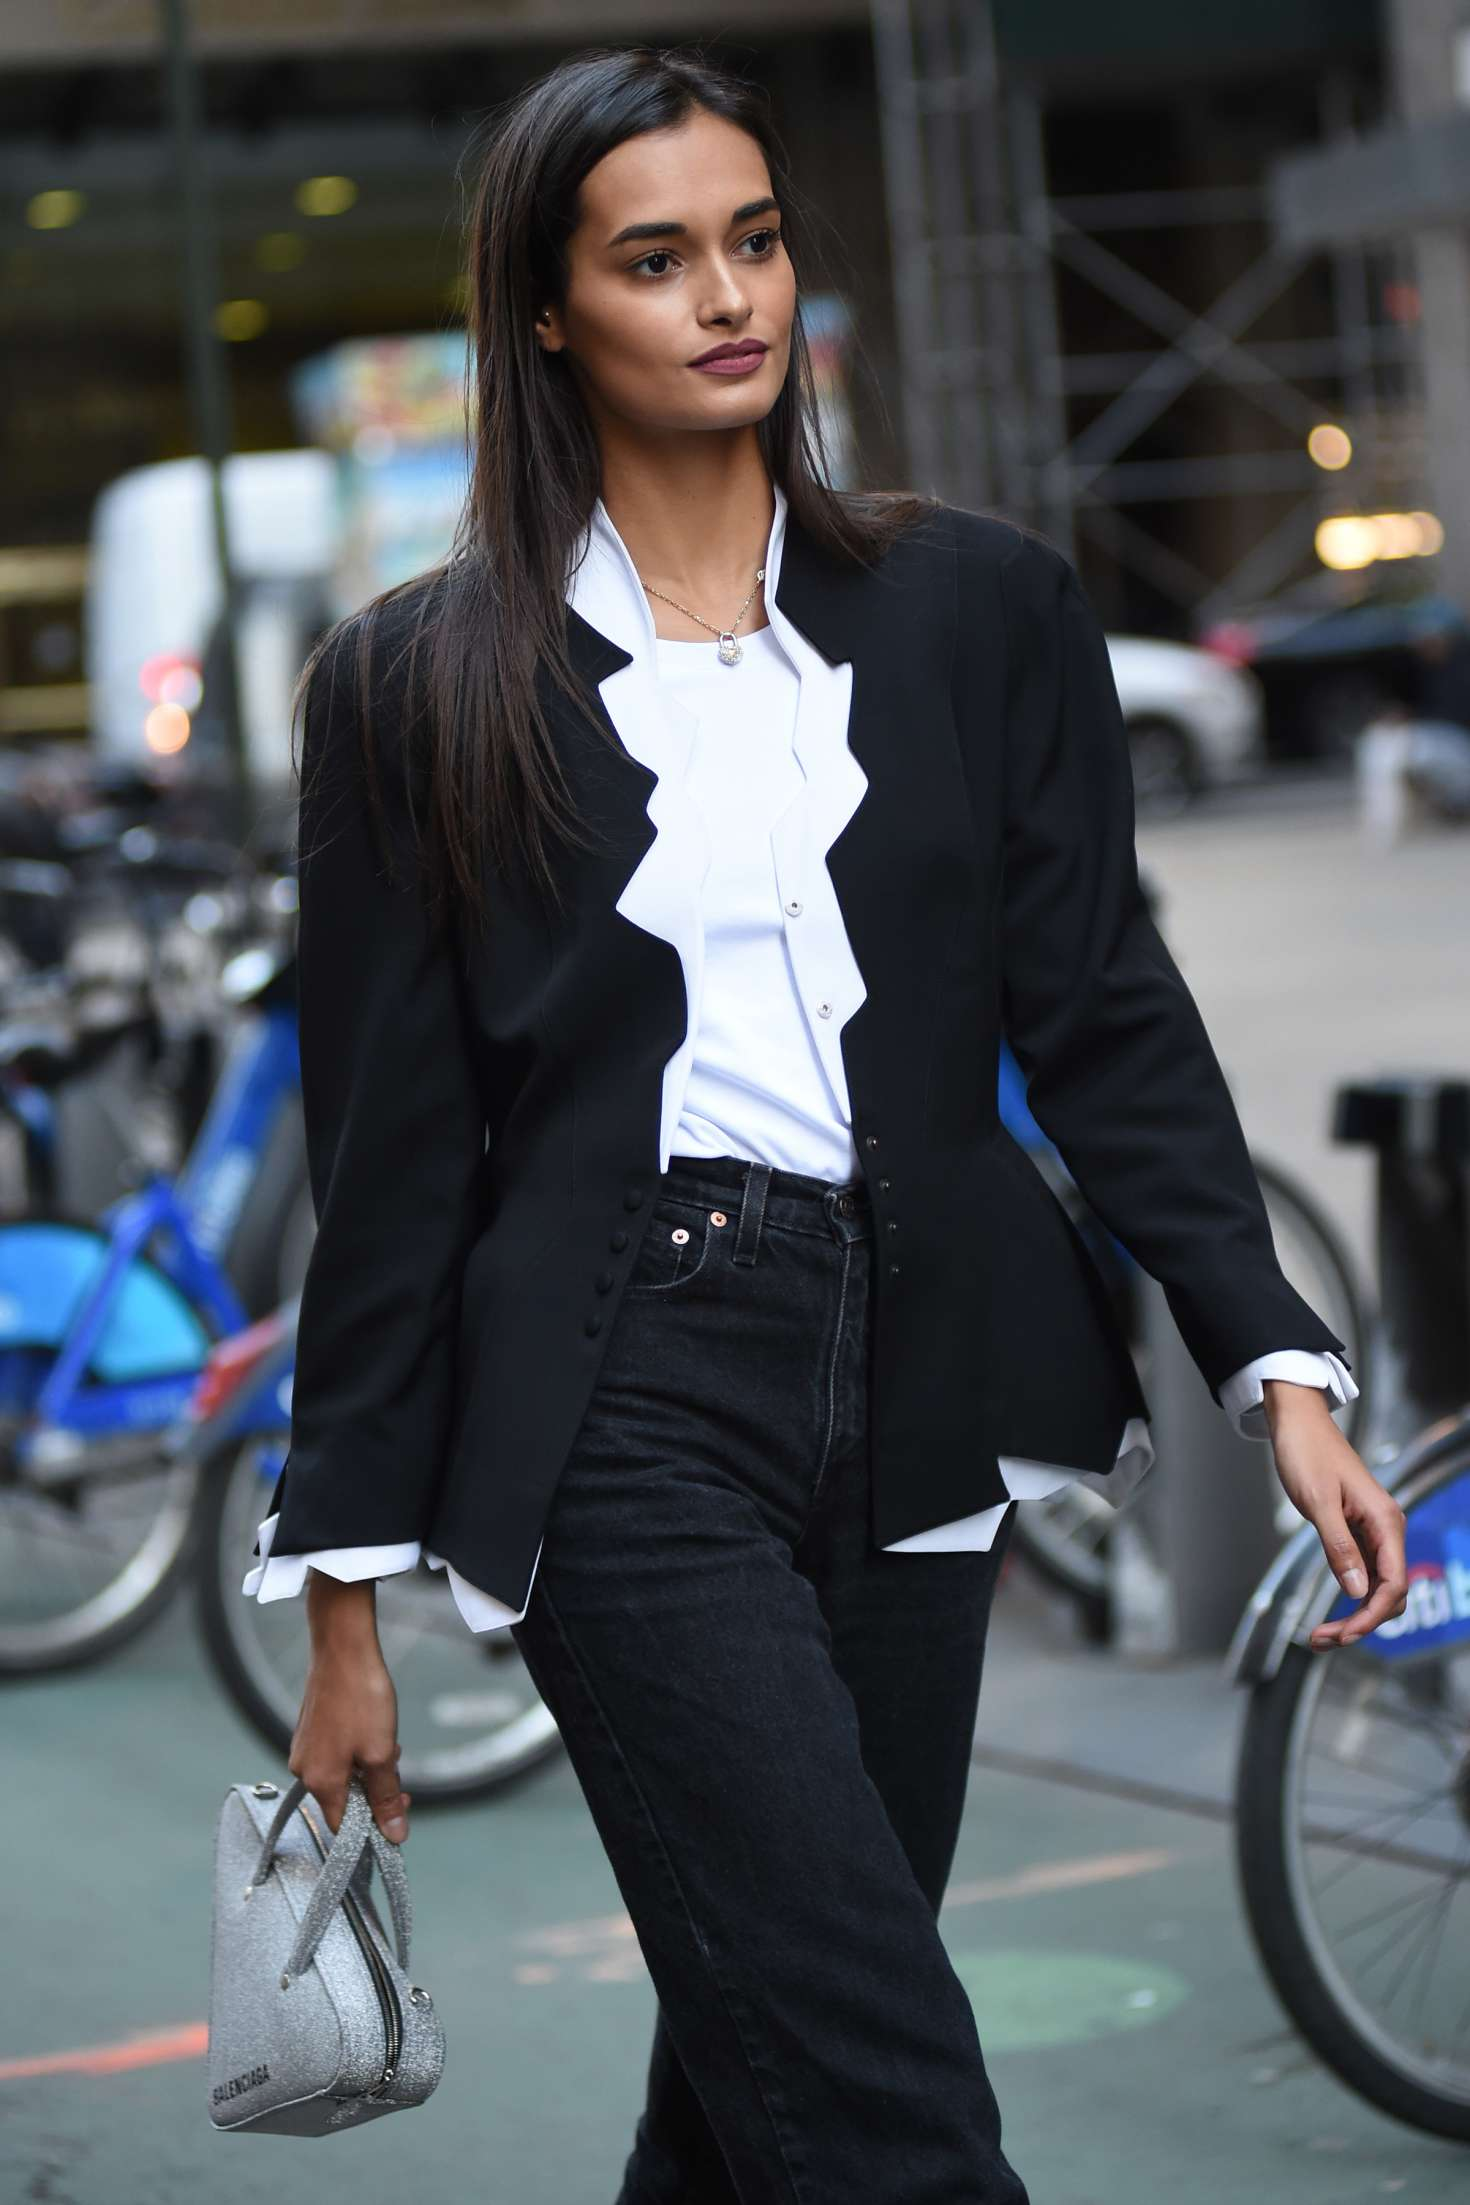 Gizele Oliveira - Victoria's Secret Fashion Show Fittings in New York